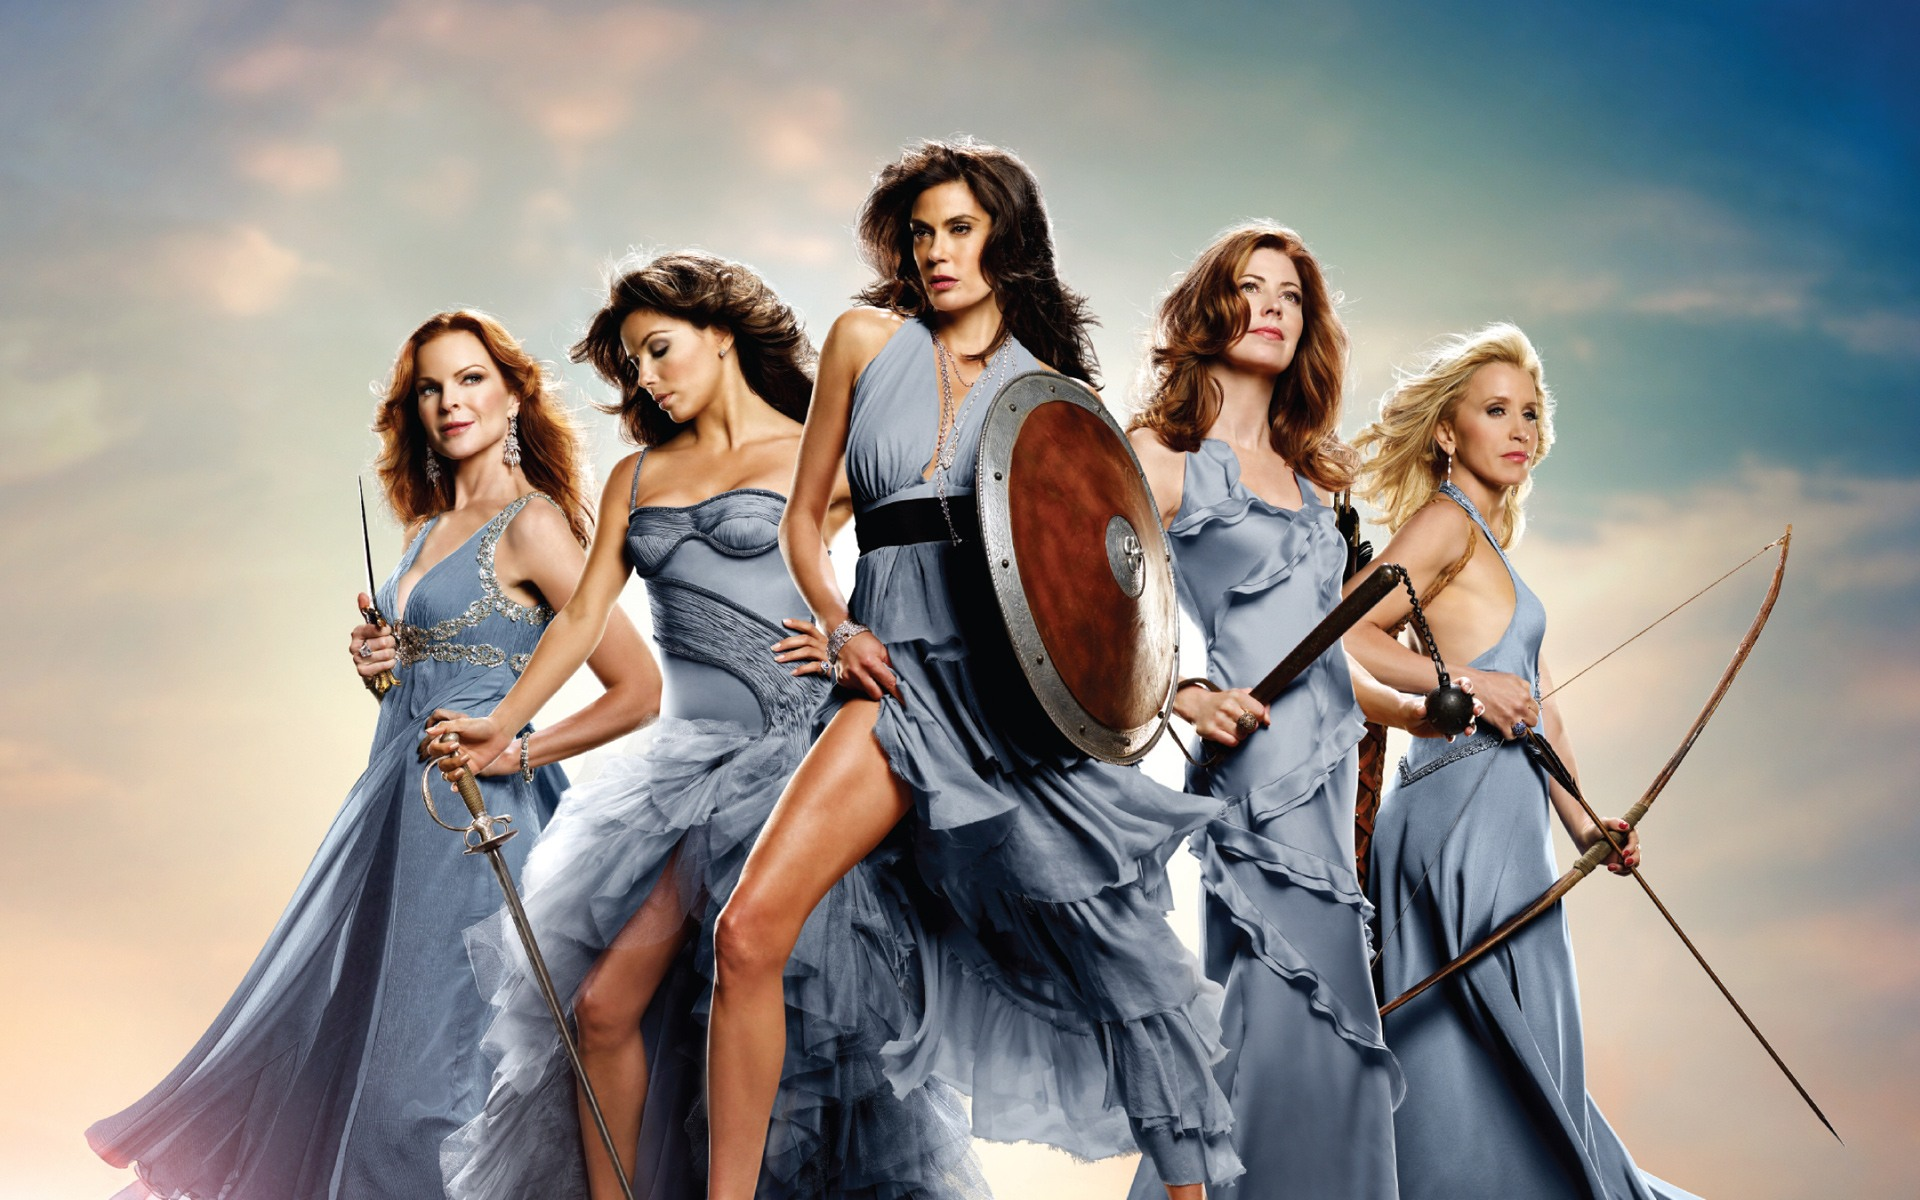 1000+ images about Desperate Housewives on Pinterest | Desperate housewives